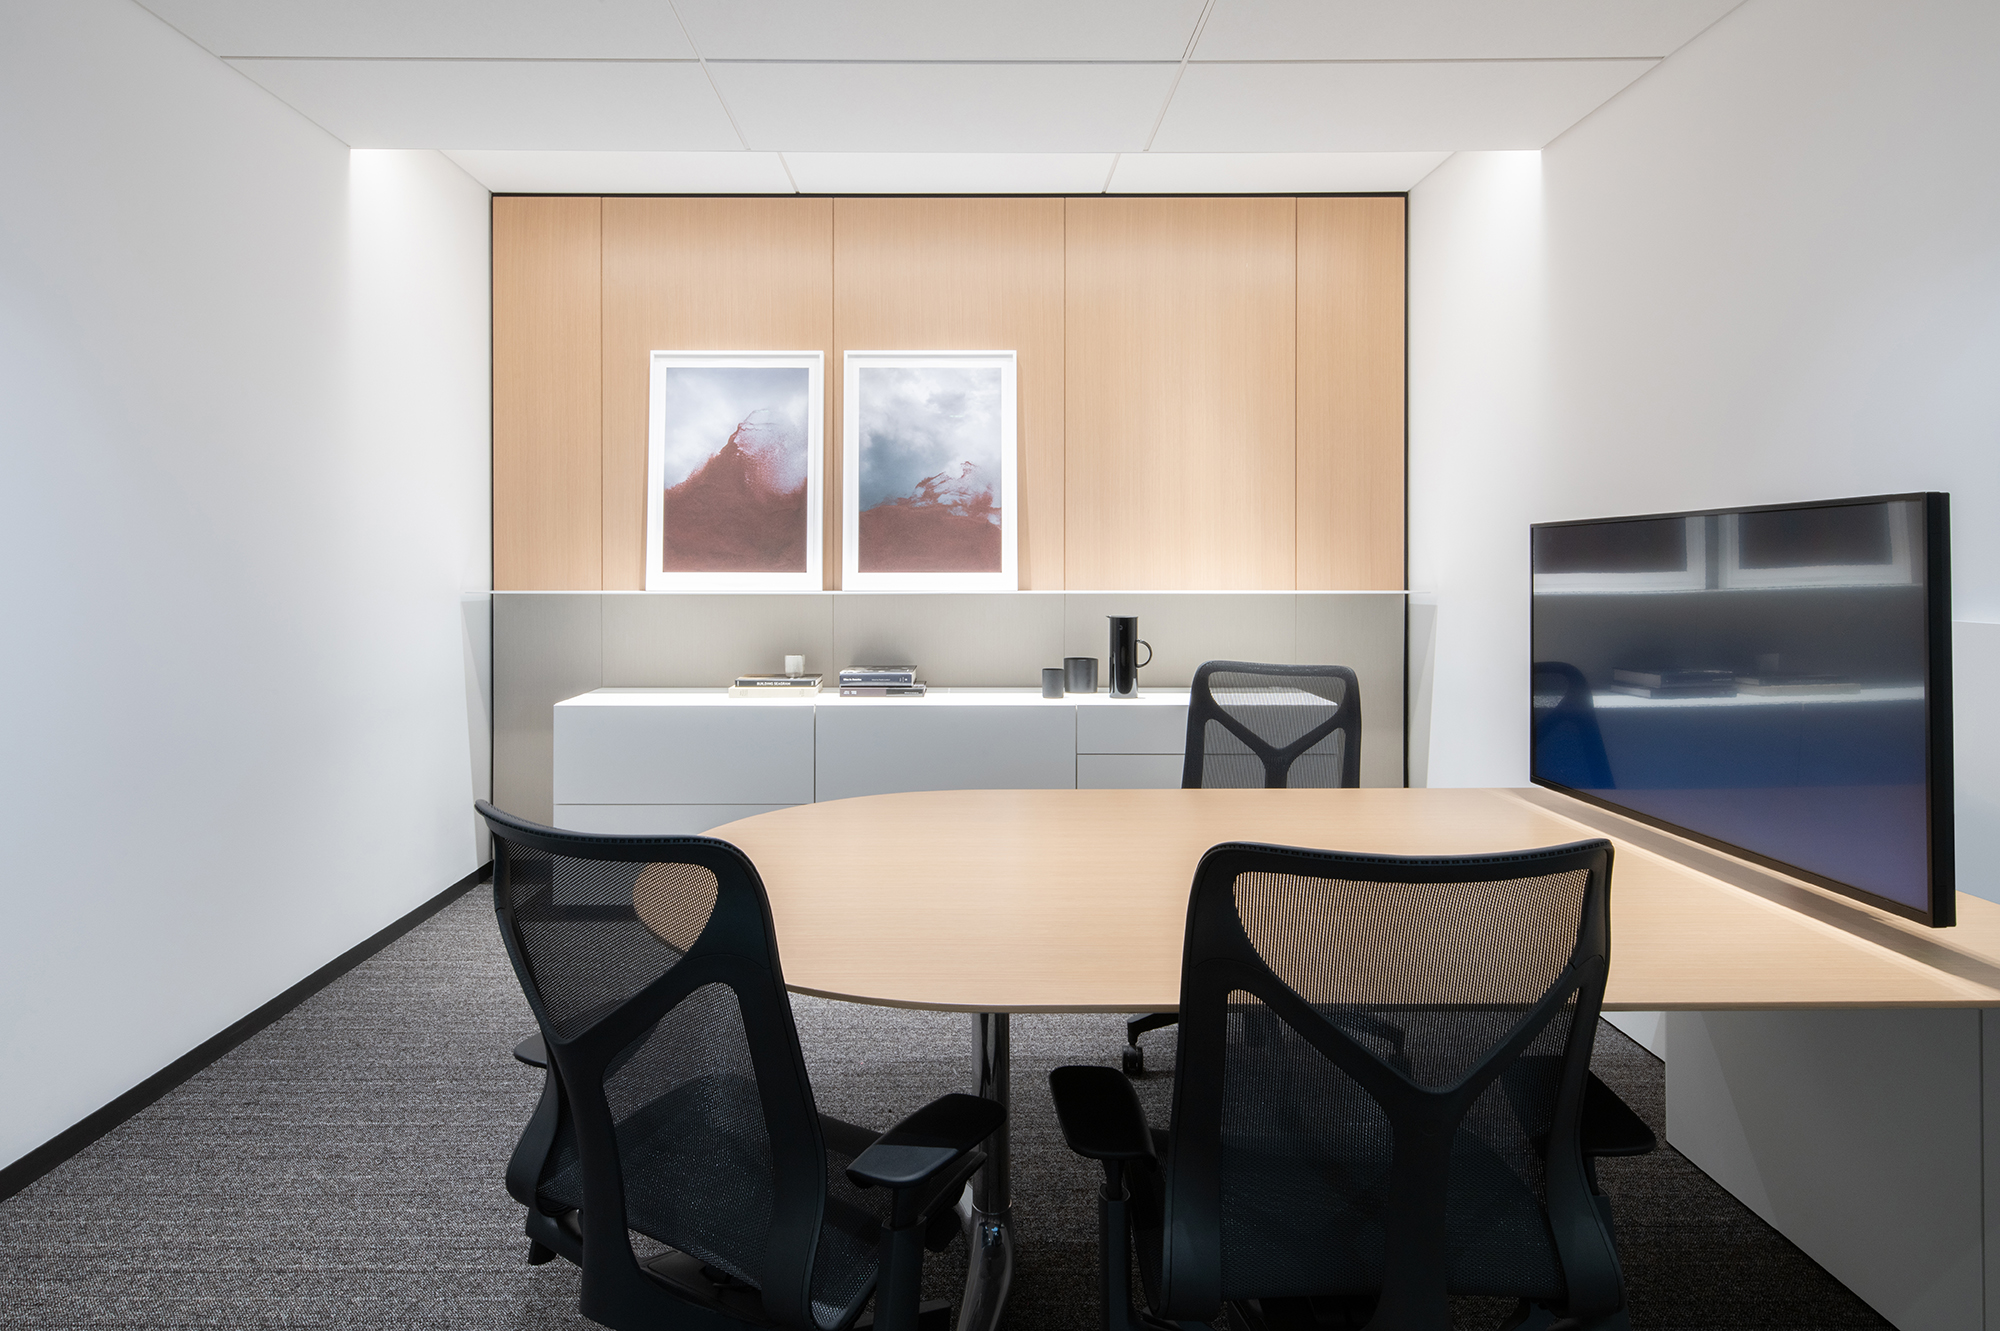 Gateway Wall Mounted Table for a bank project in Montreal